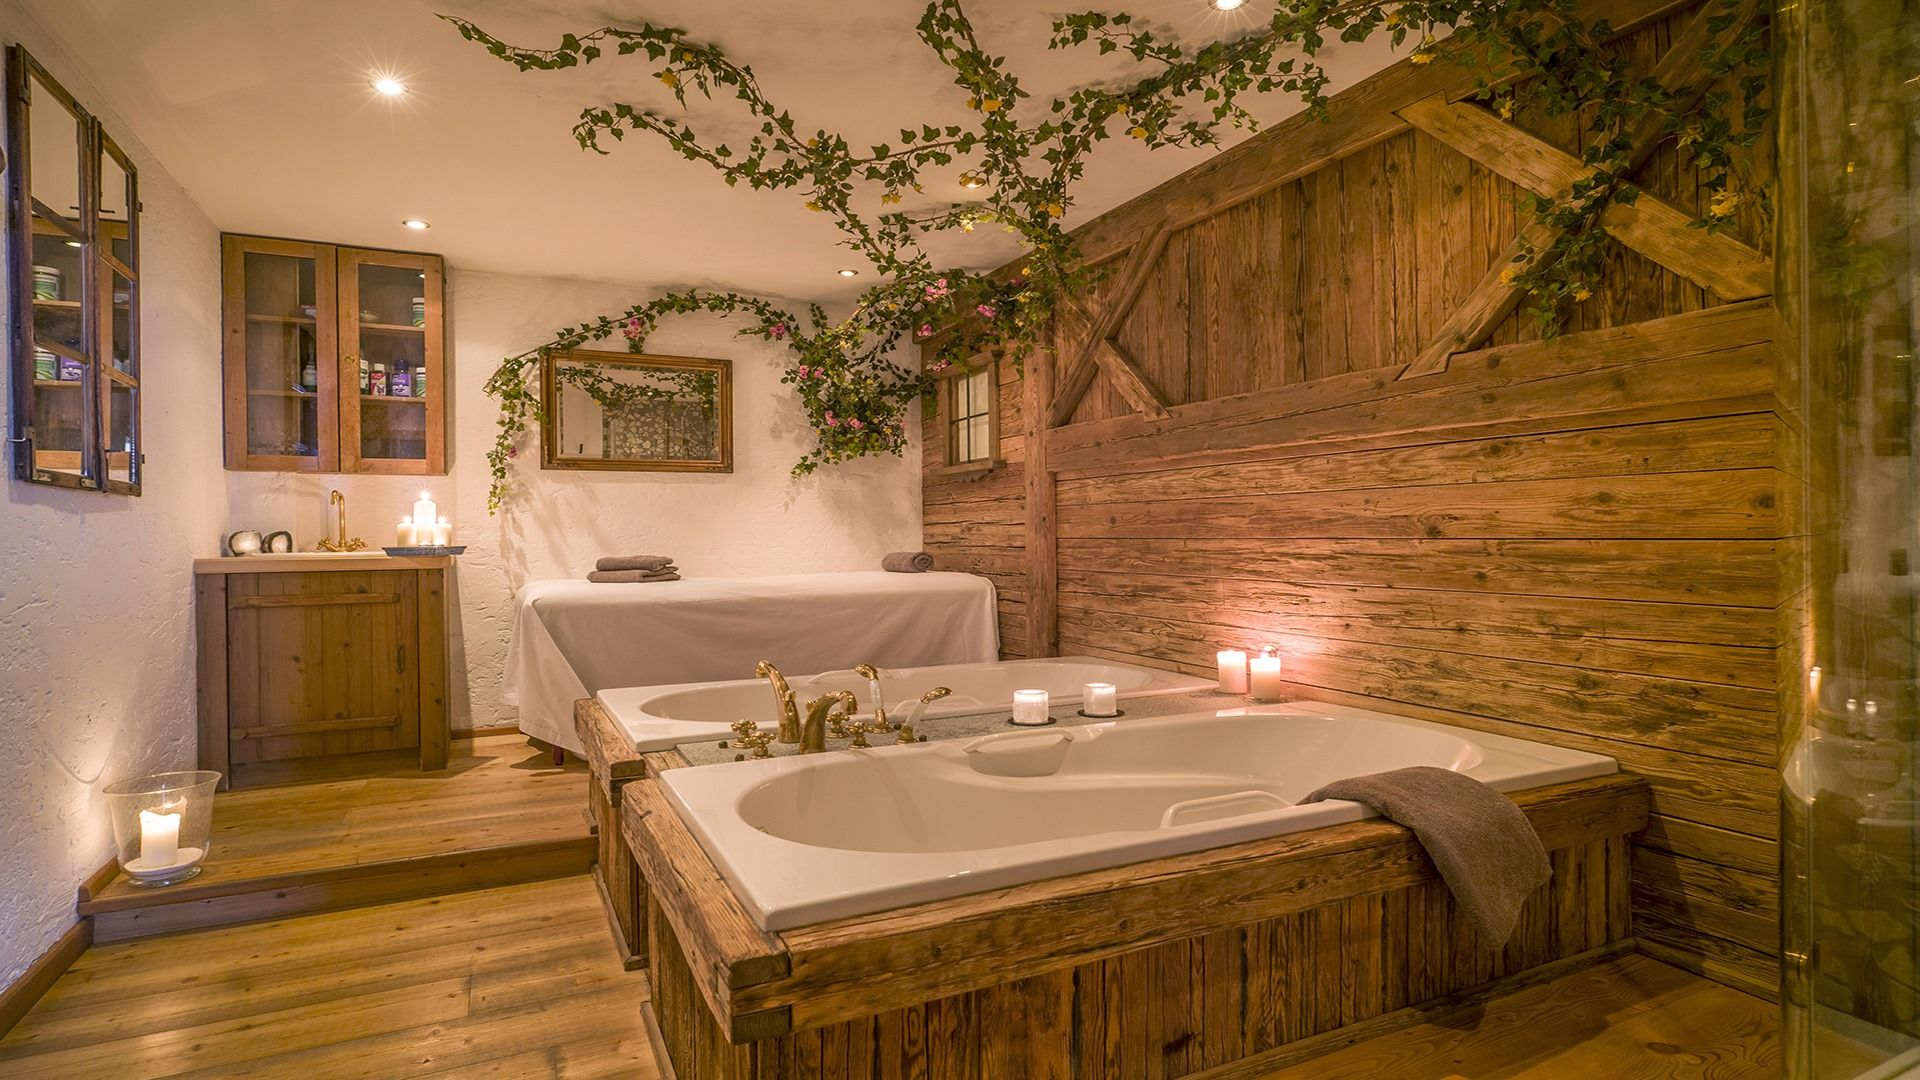 Two tubs with candlelight in wood-panelled room